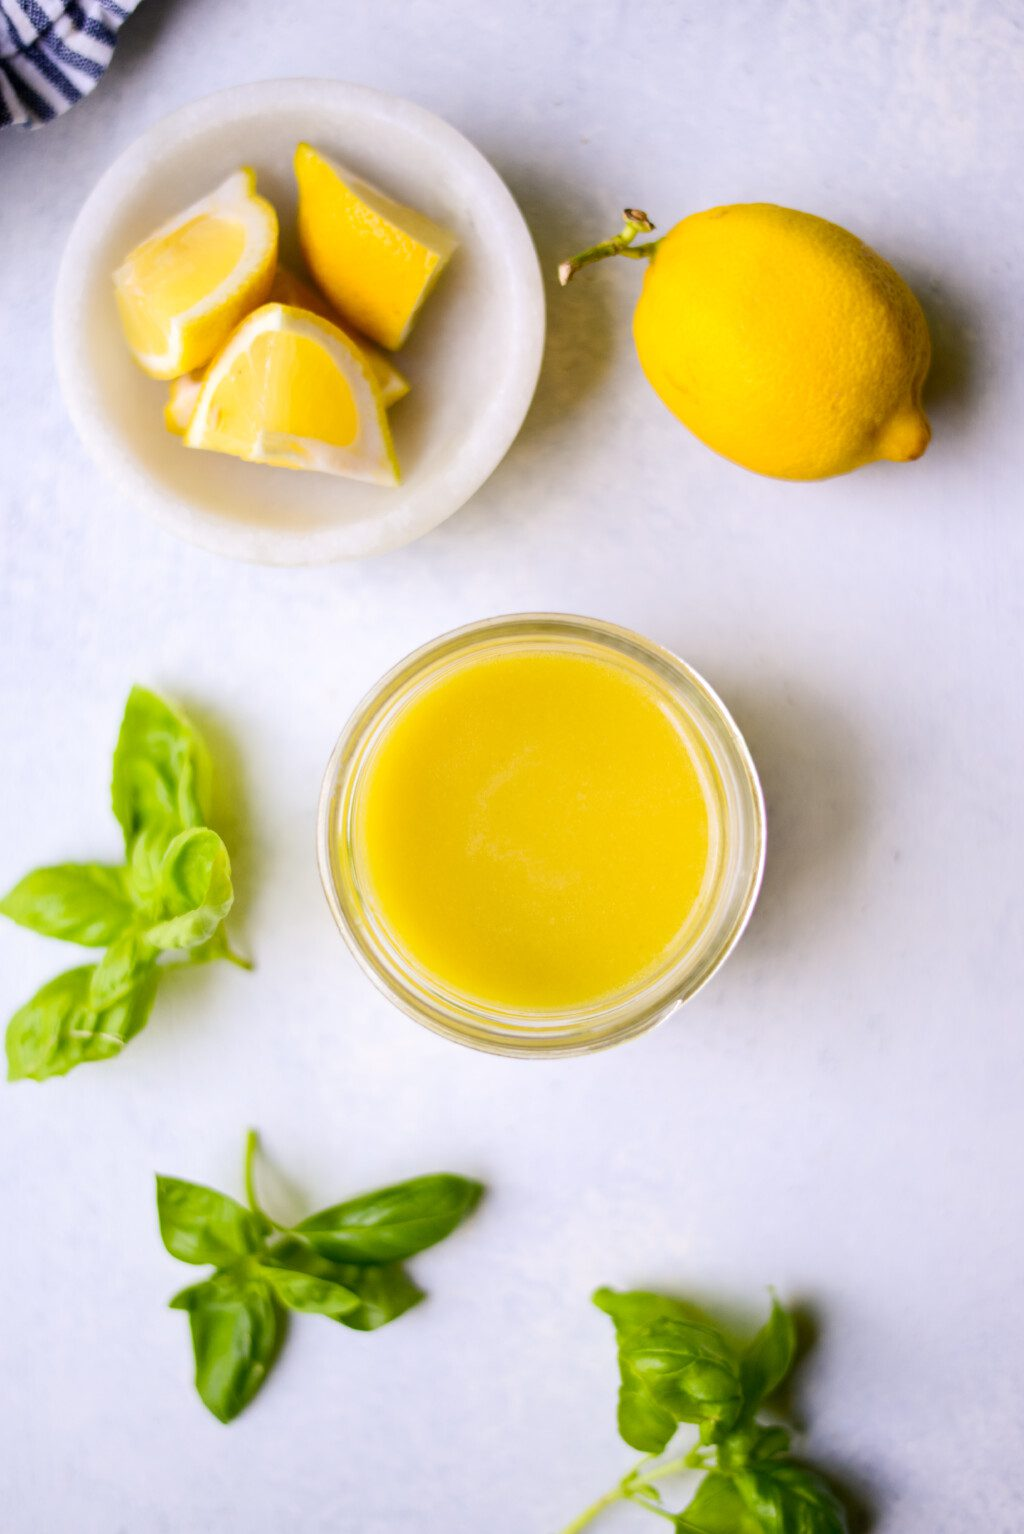 top down view of ingredients for a lemon salad dressing